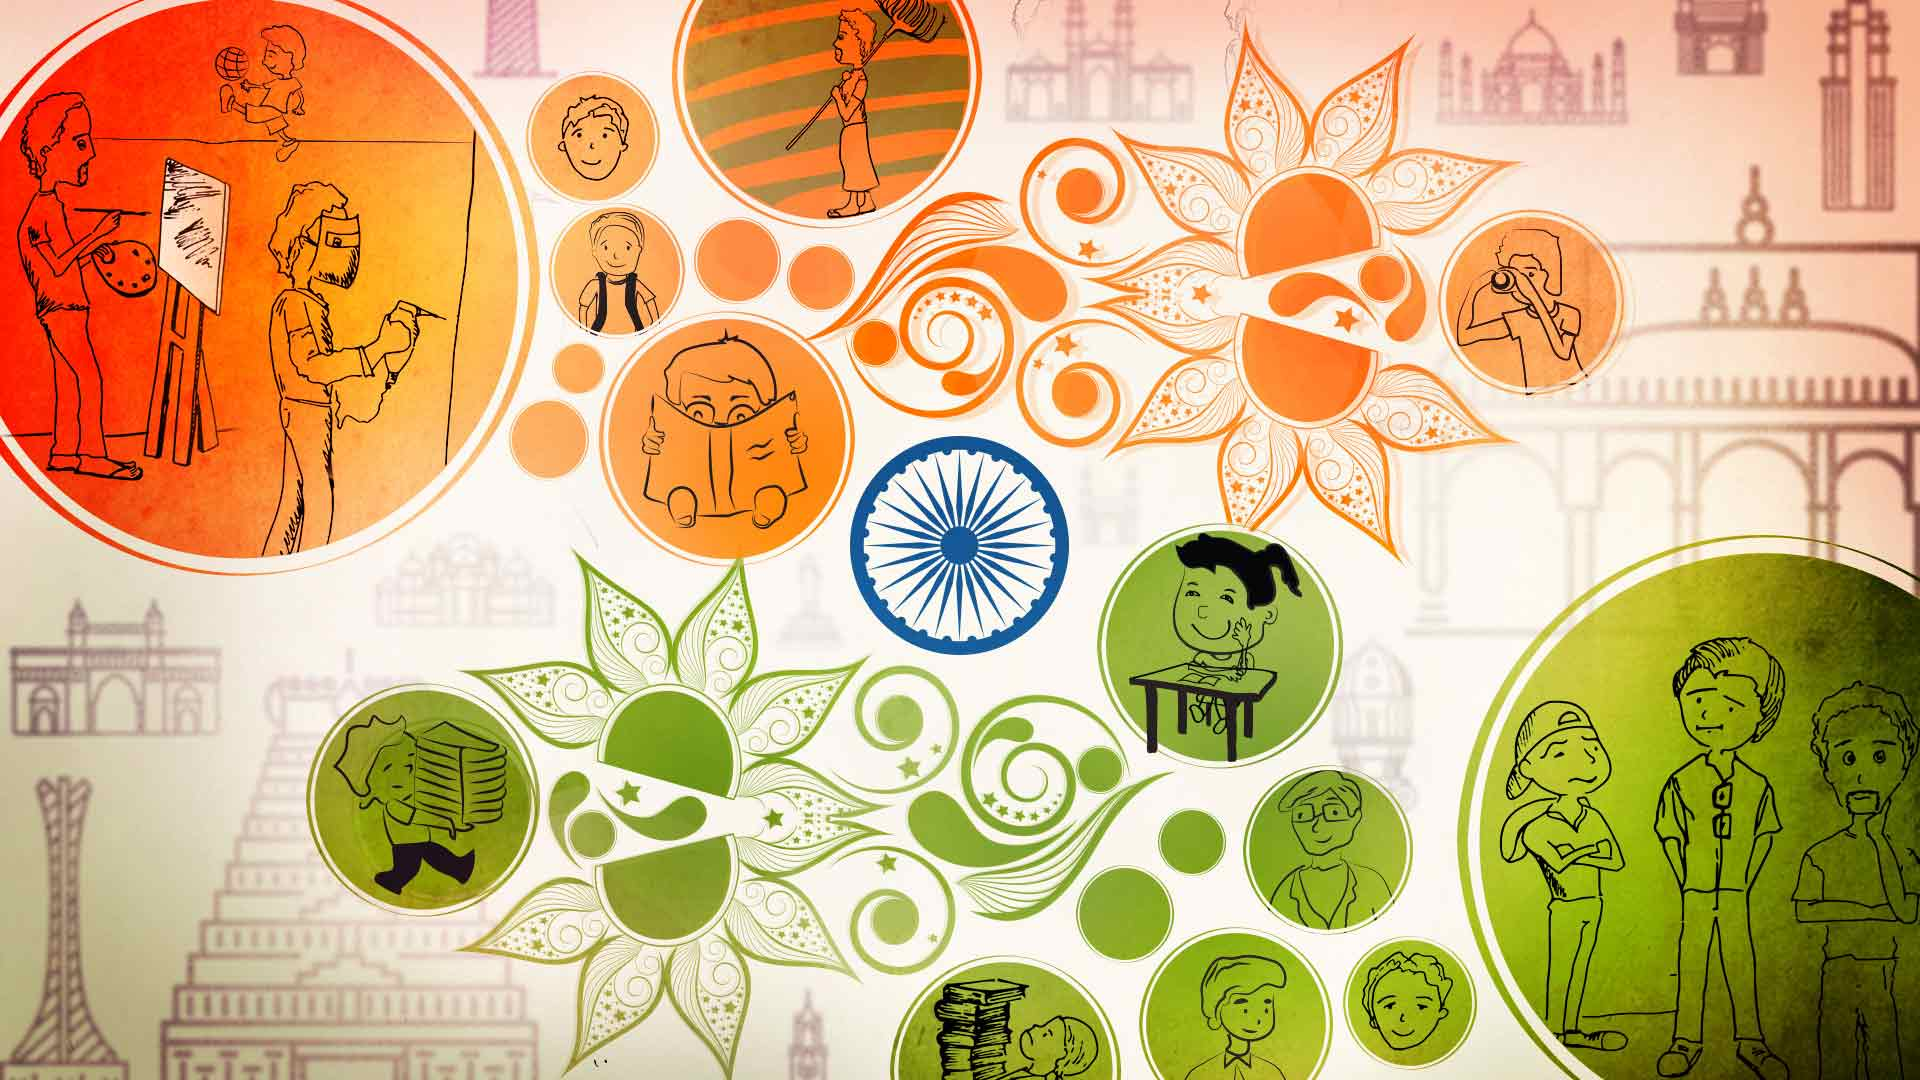 my vision of india Essay on future of india category: essays, paragraphs and articles on november 15, 2014 by ajit sen article on india of my dream we can very well imagine the future of india by observing the inherent tendencies, and correctly reading into the psychology of today's children.